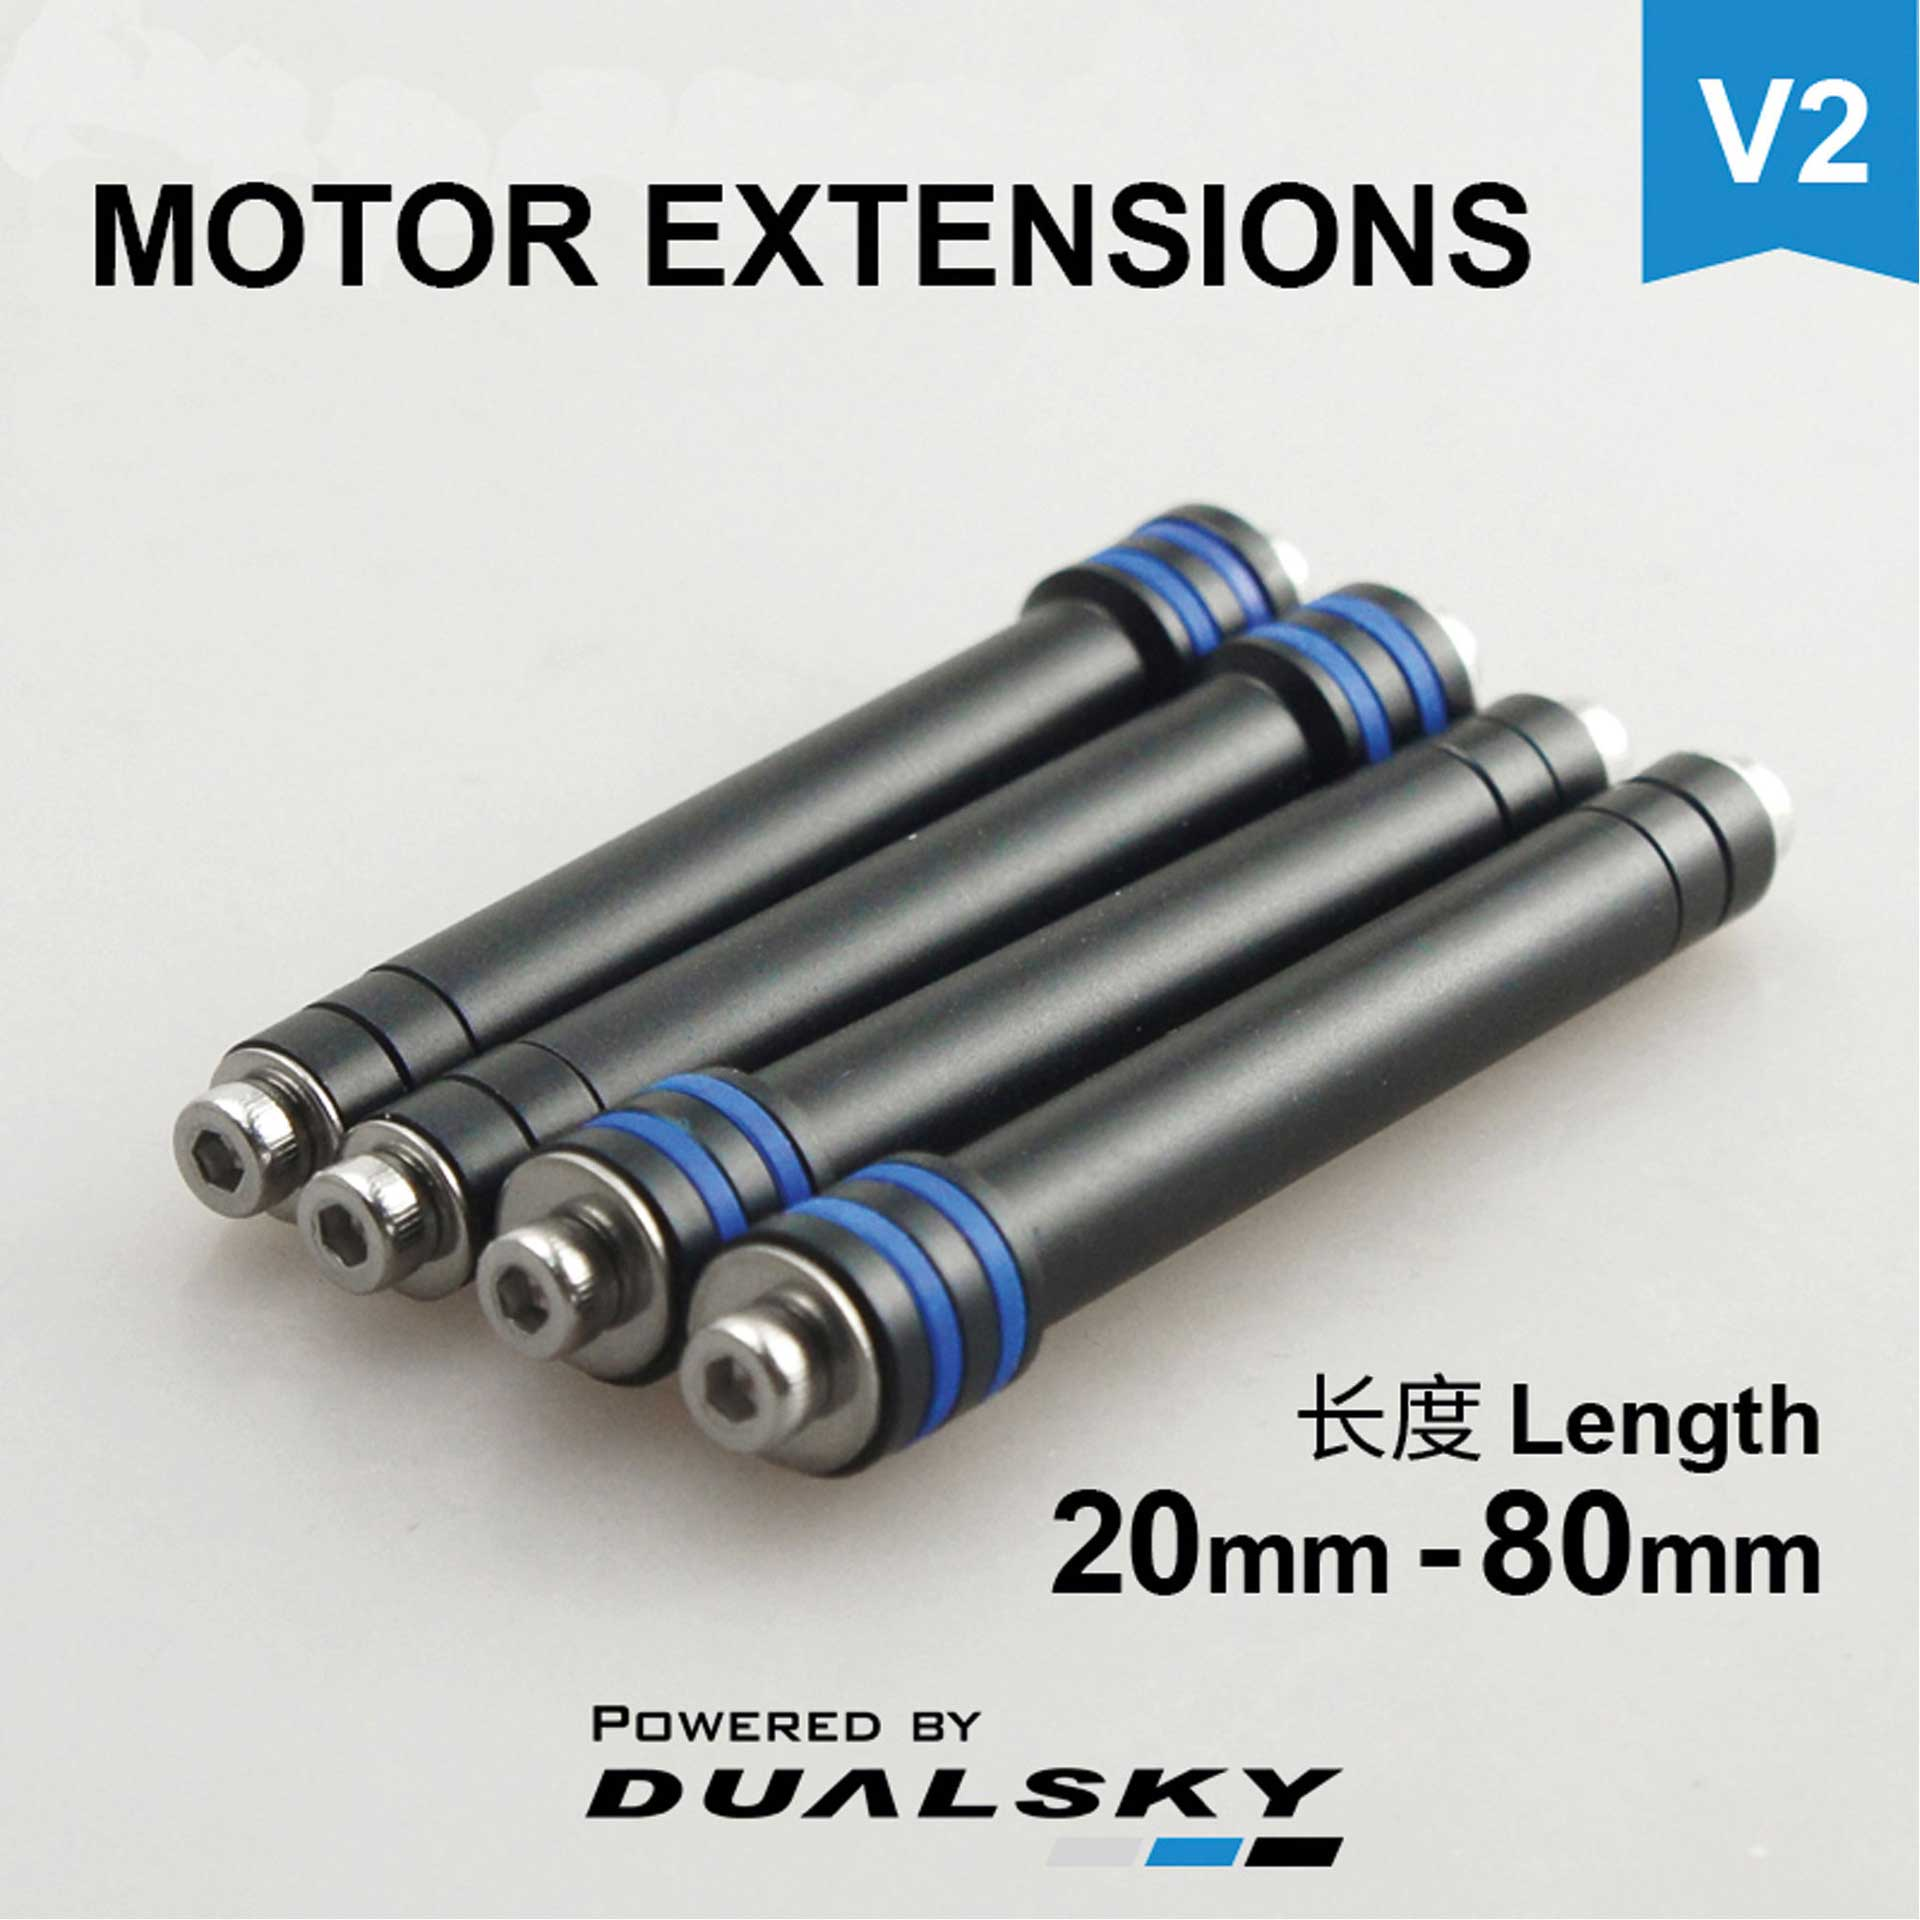 DUALSKY MOTOR EXTENSIONS V6 ME4-20 LENGTH 2 TO 20MM ADJUSTABLE WITH SCREWS stand off